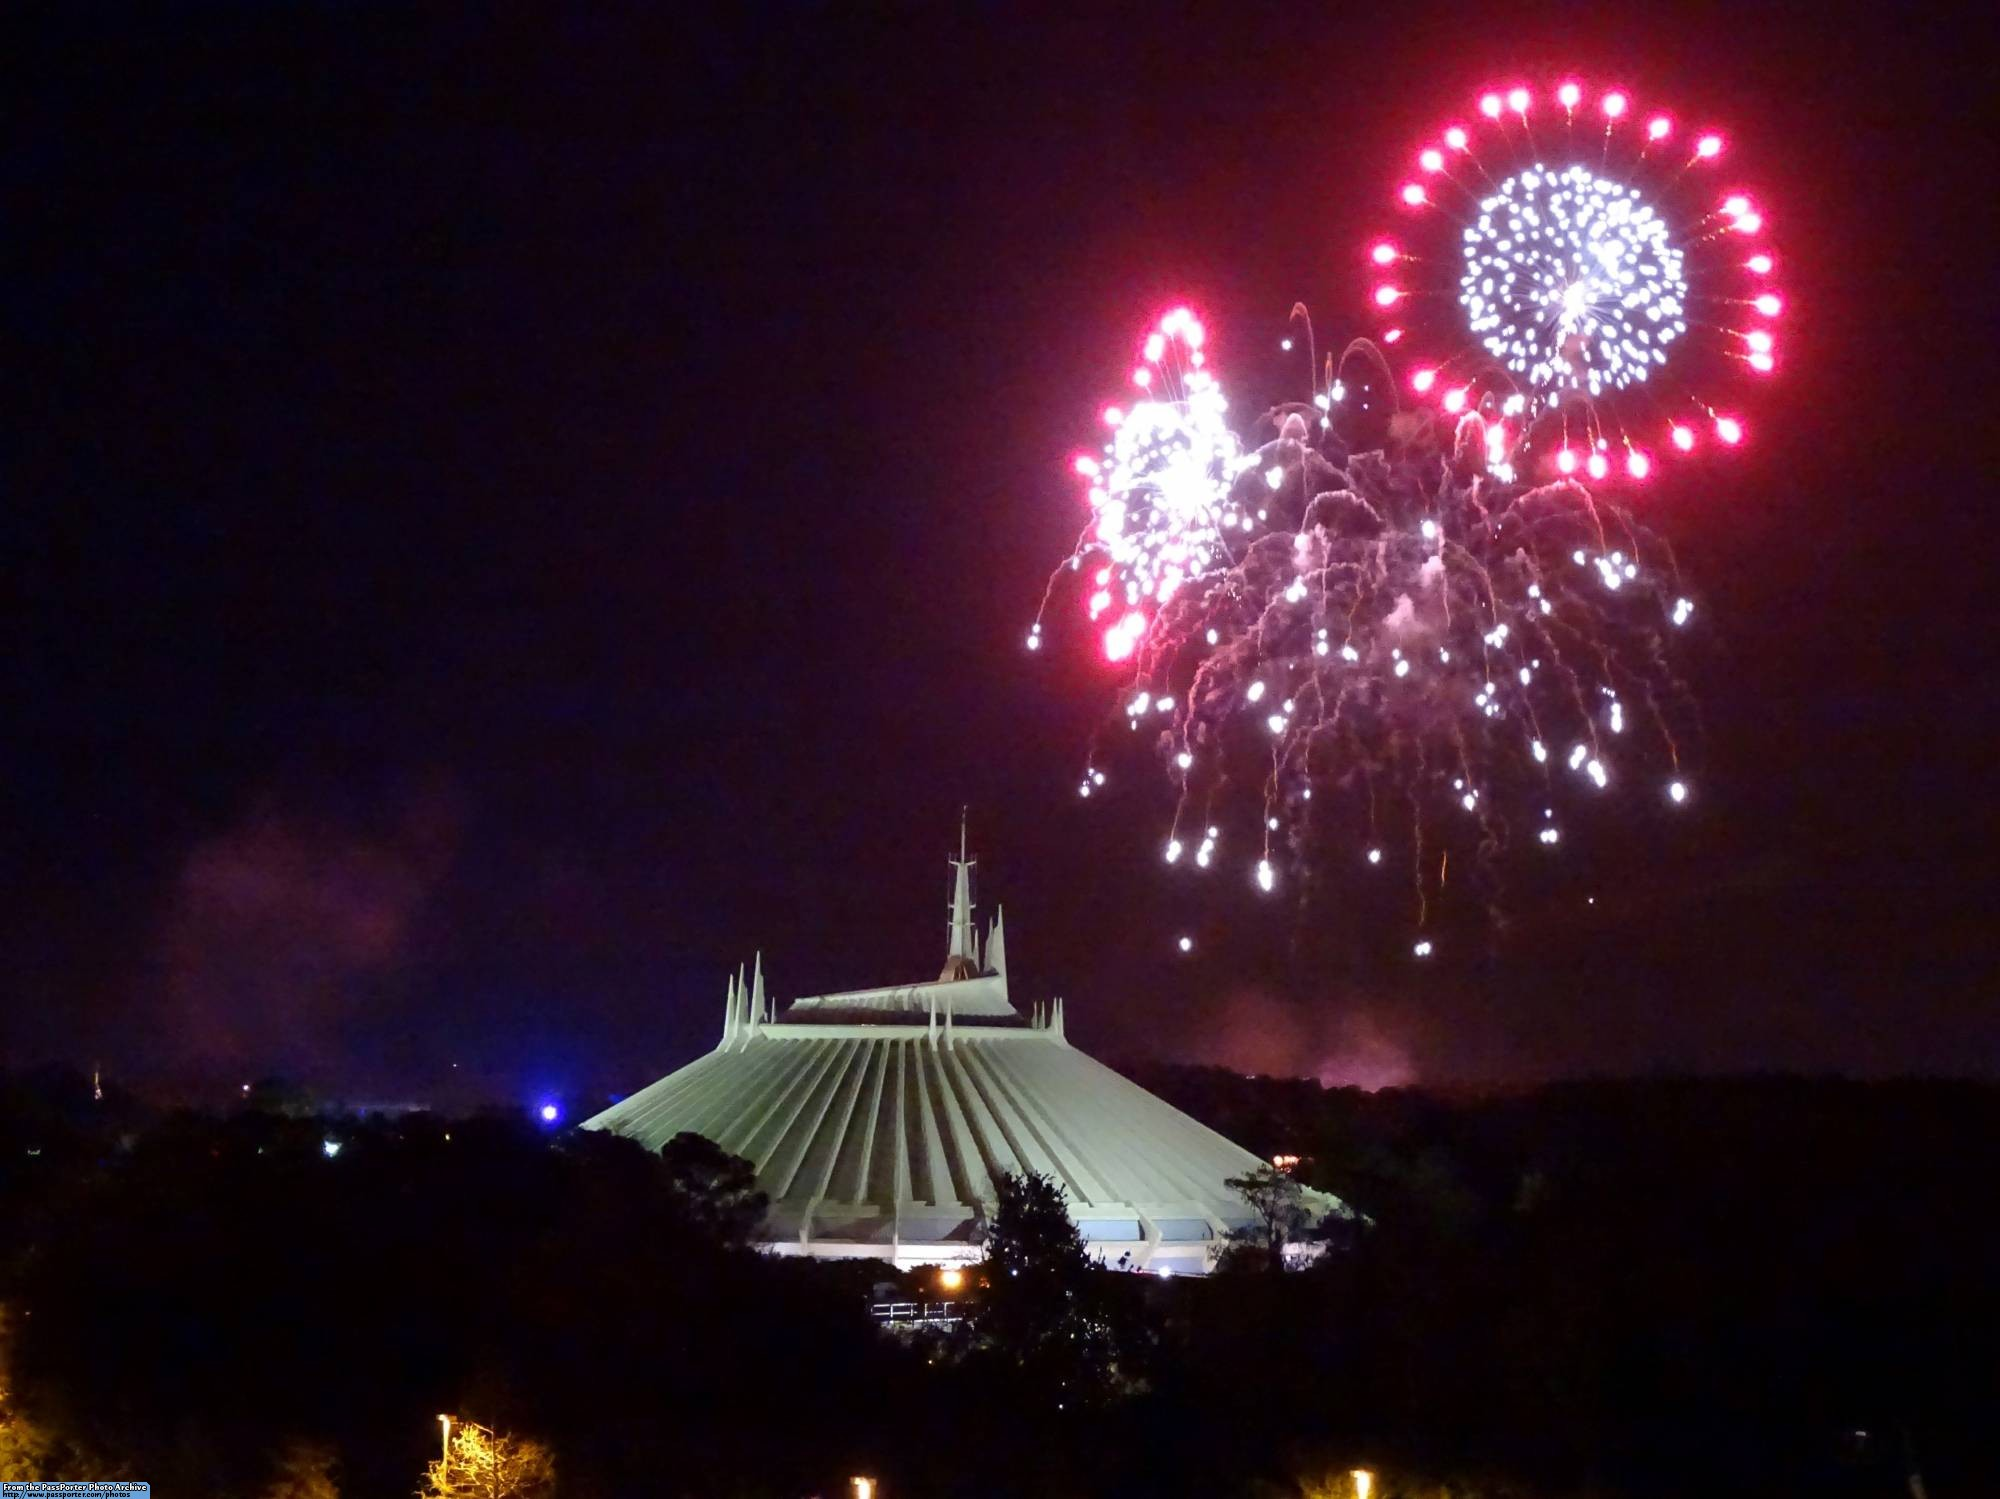 Saying a fond farewell to 'Wishes' at the Magic Kingdom |PassPorter.com